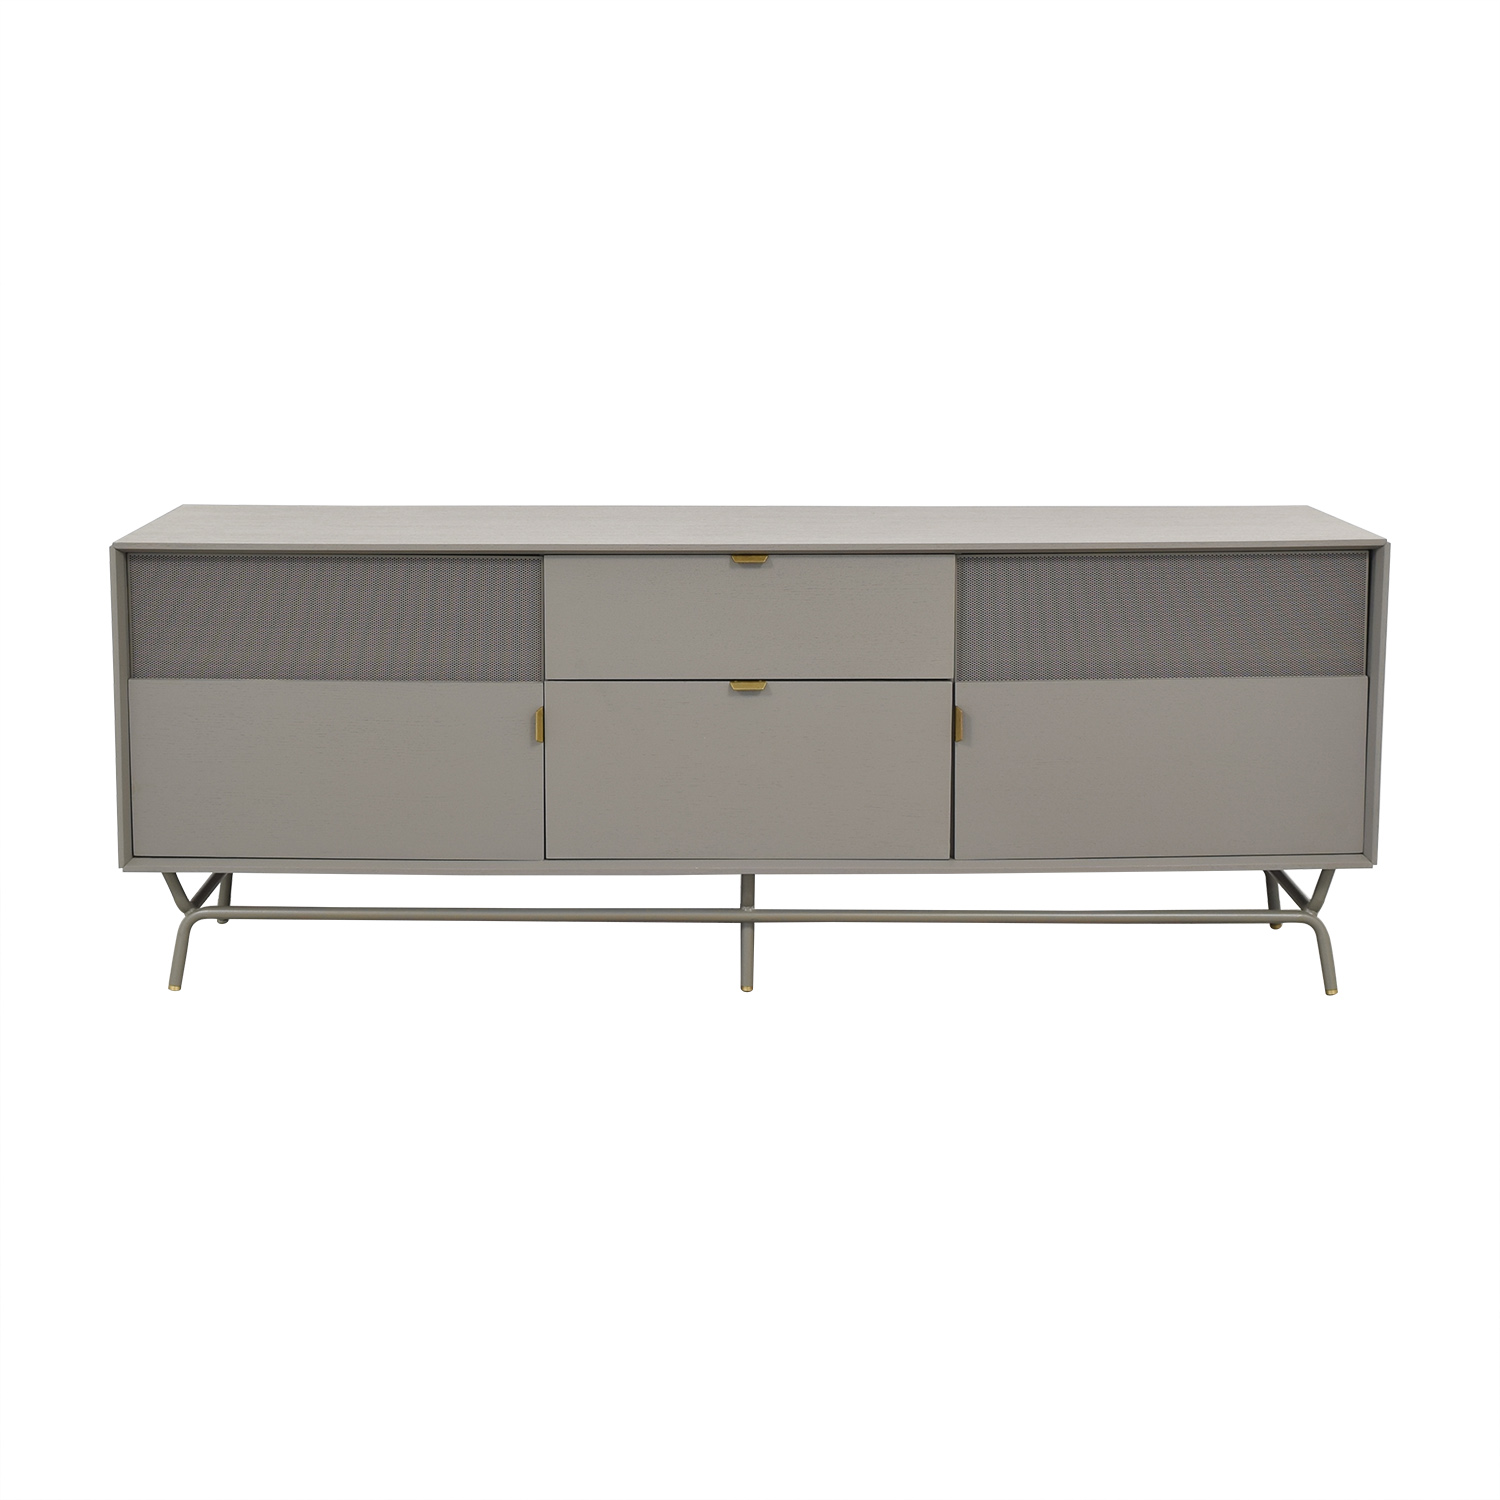 Blu Dot Blu Dot Dang 2 Door / 2 Drawer Console nyc